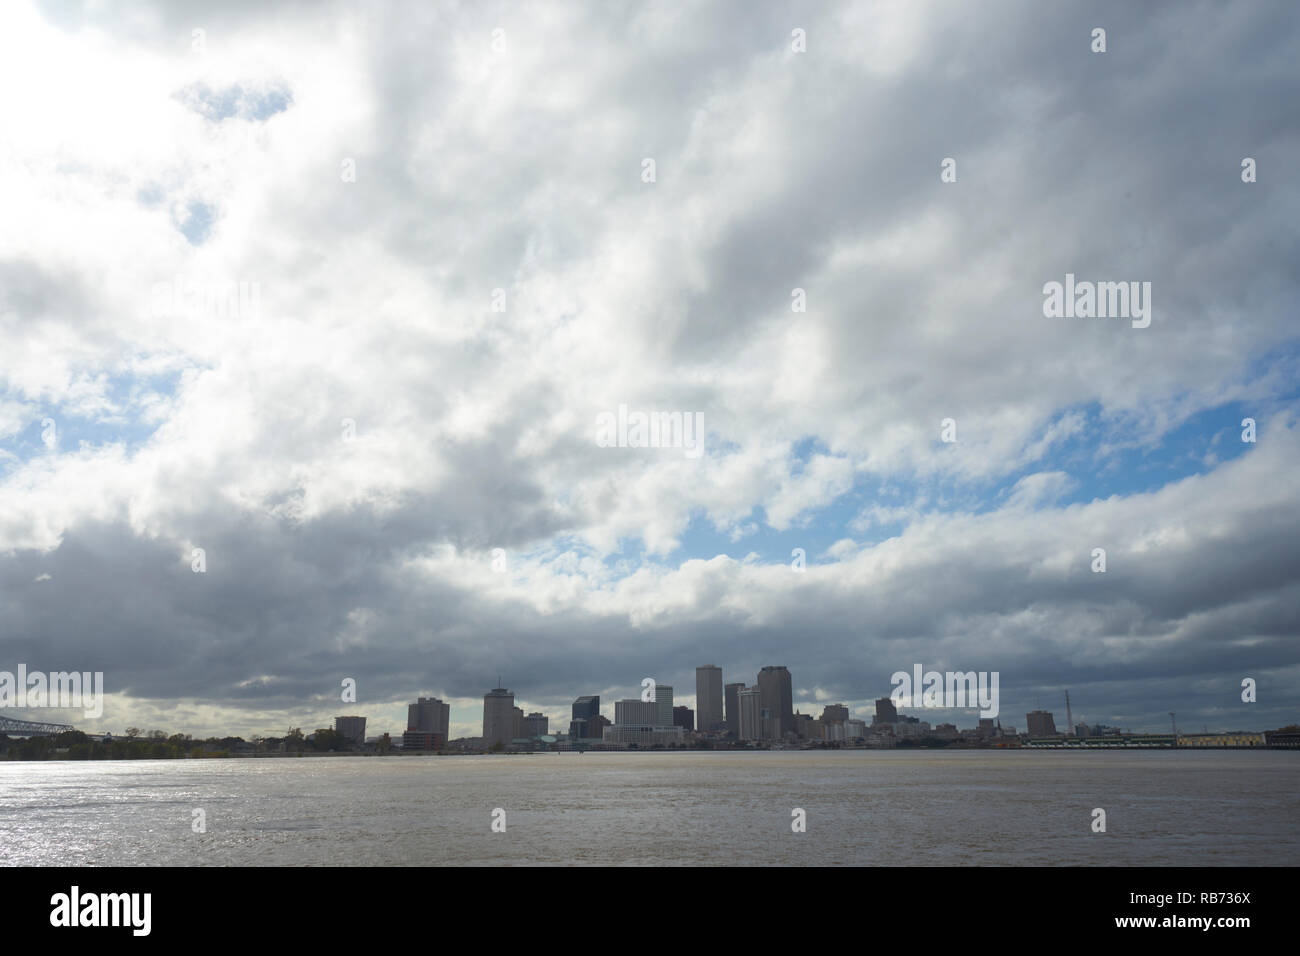 View of New Orleans downtown skyline. - Stock Image